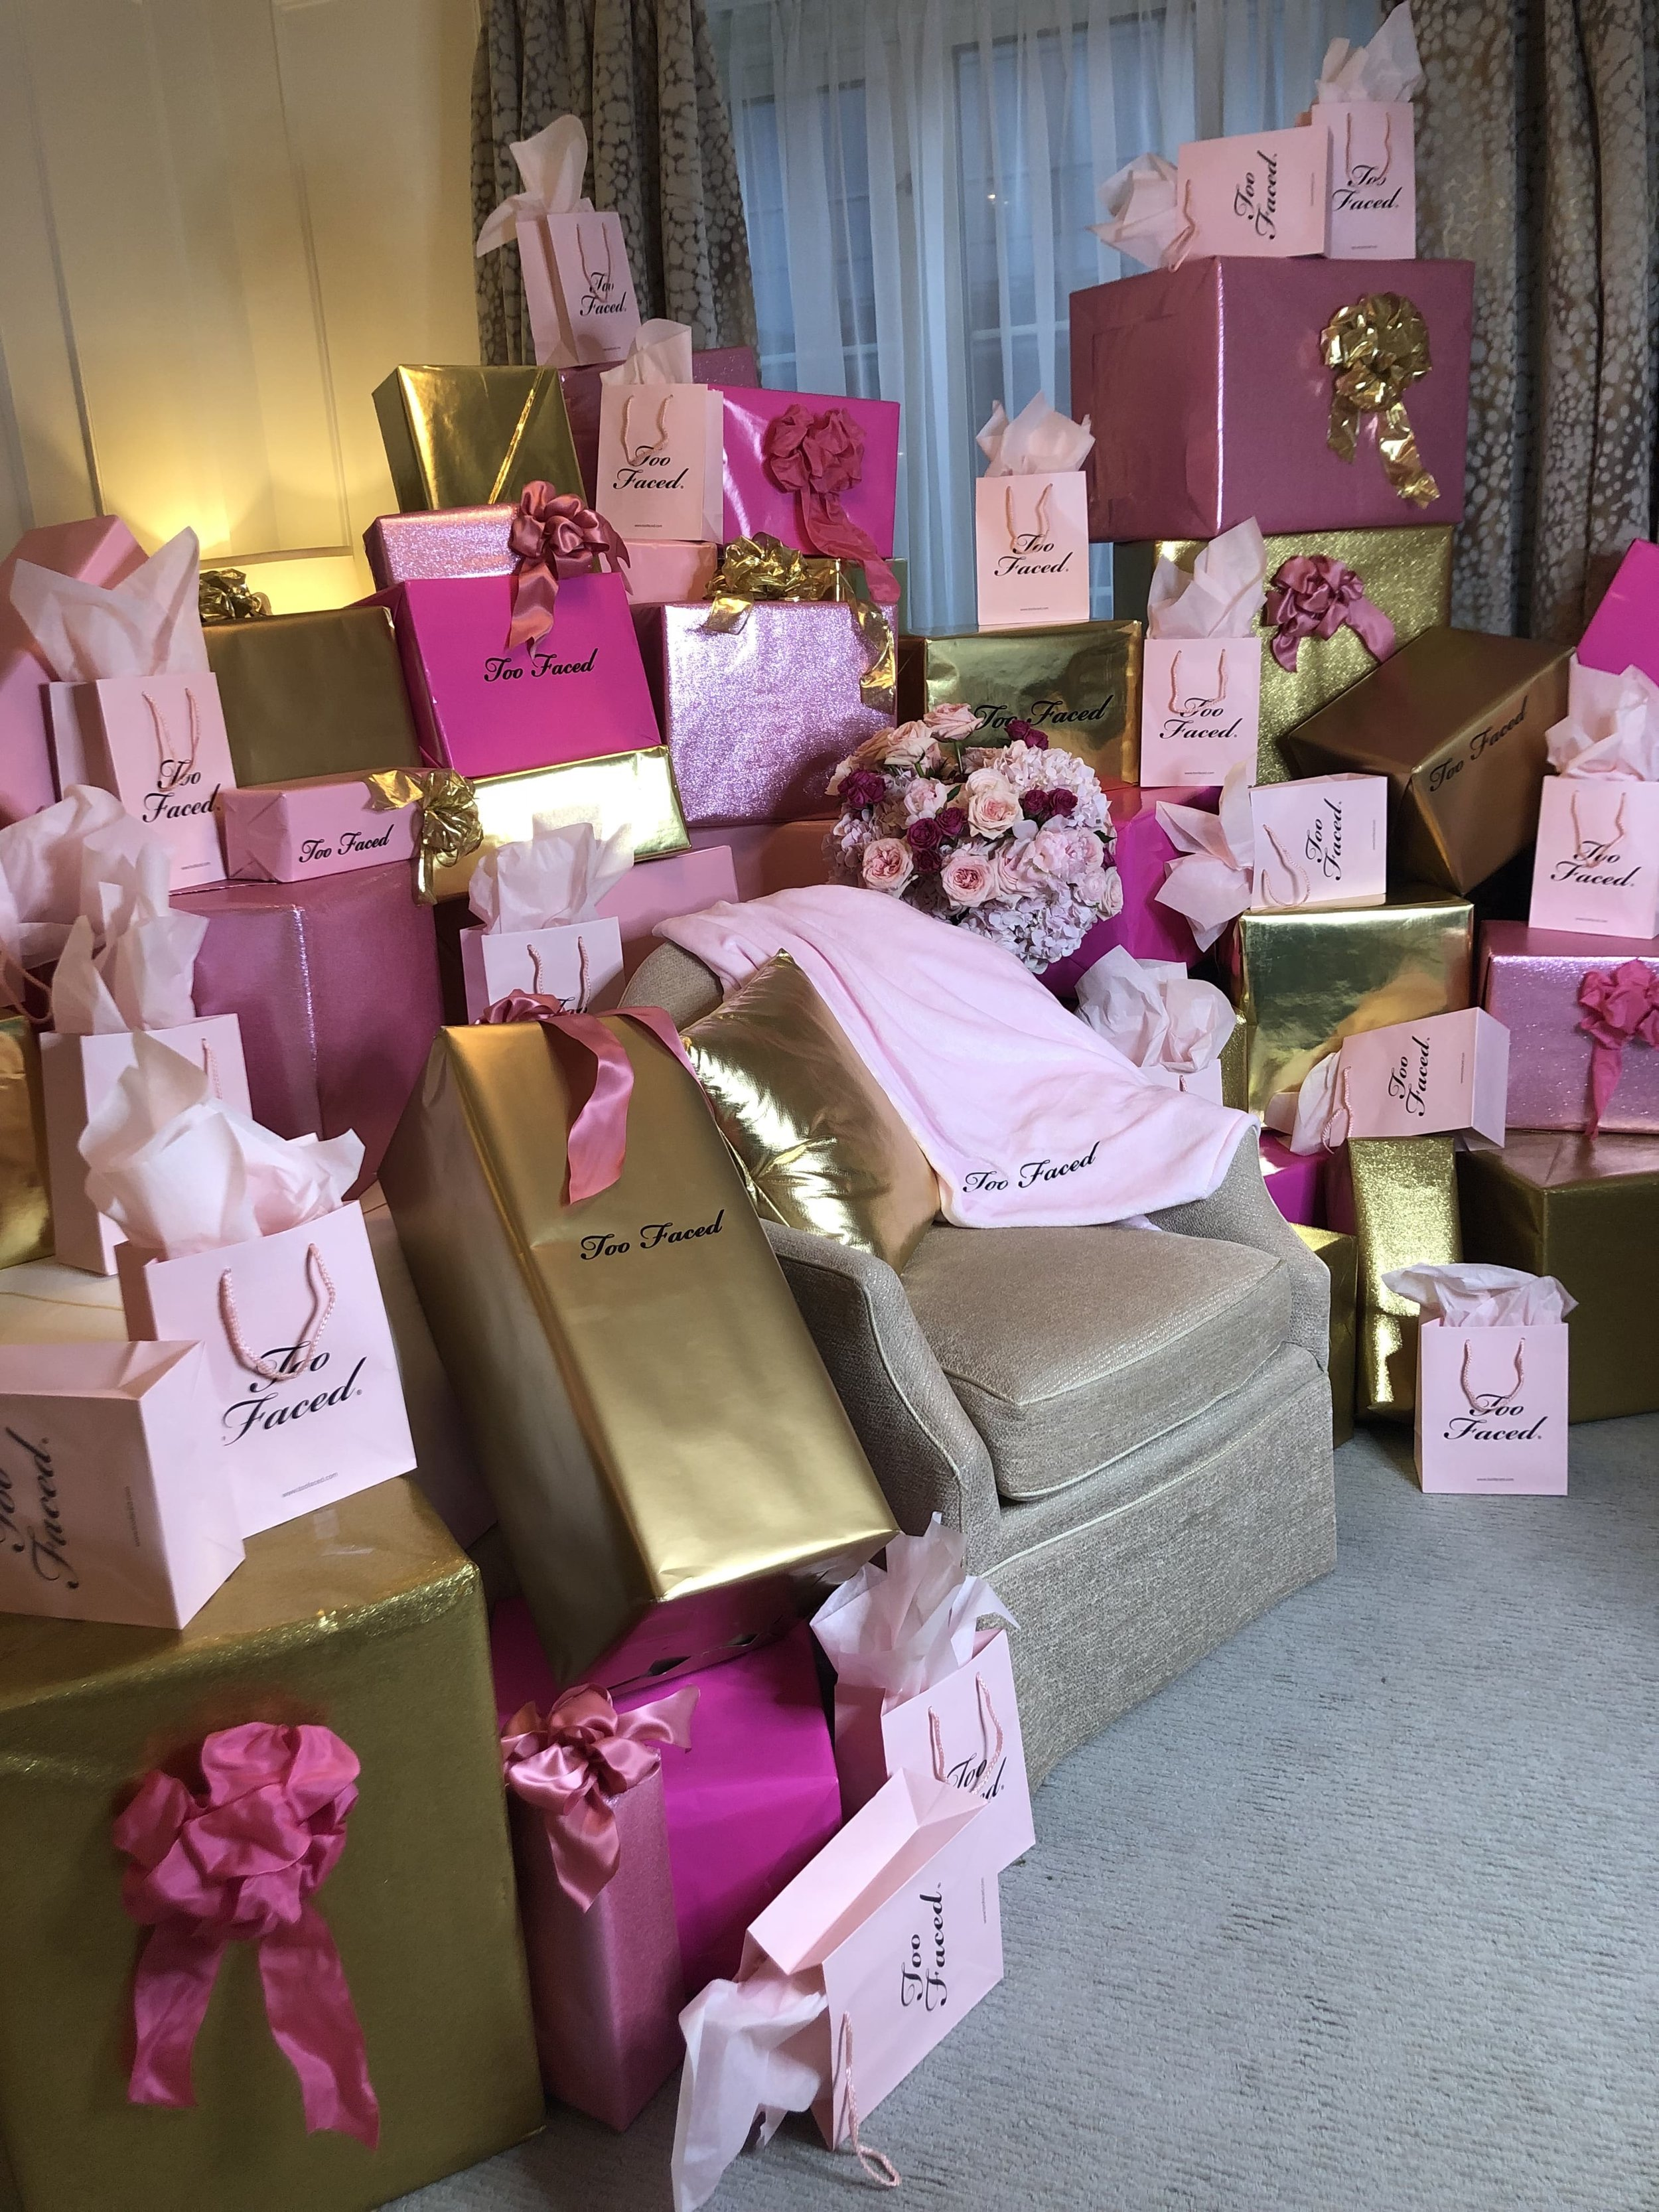 Too Faced Gift Installation- B Floral